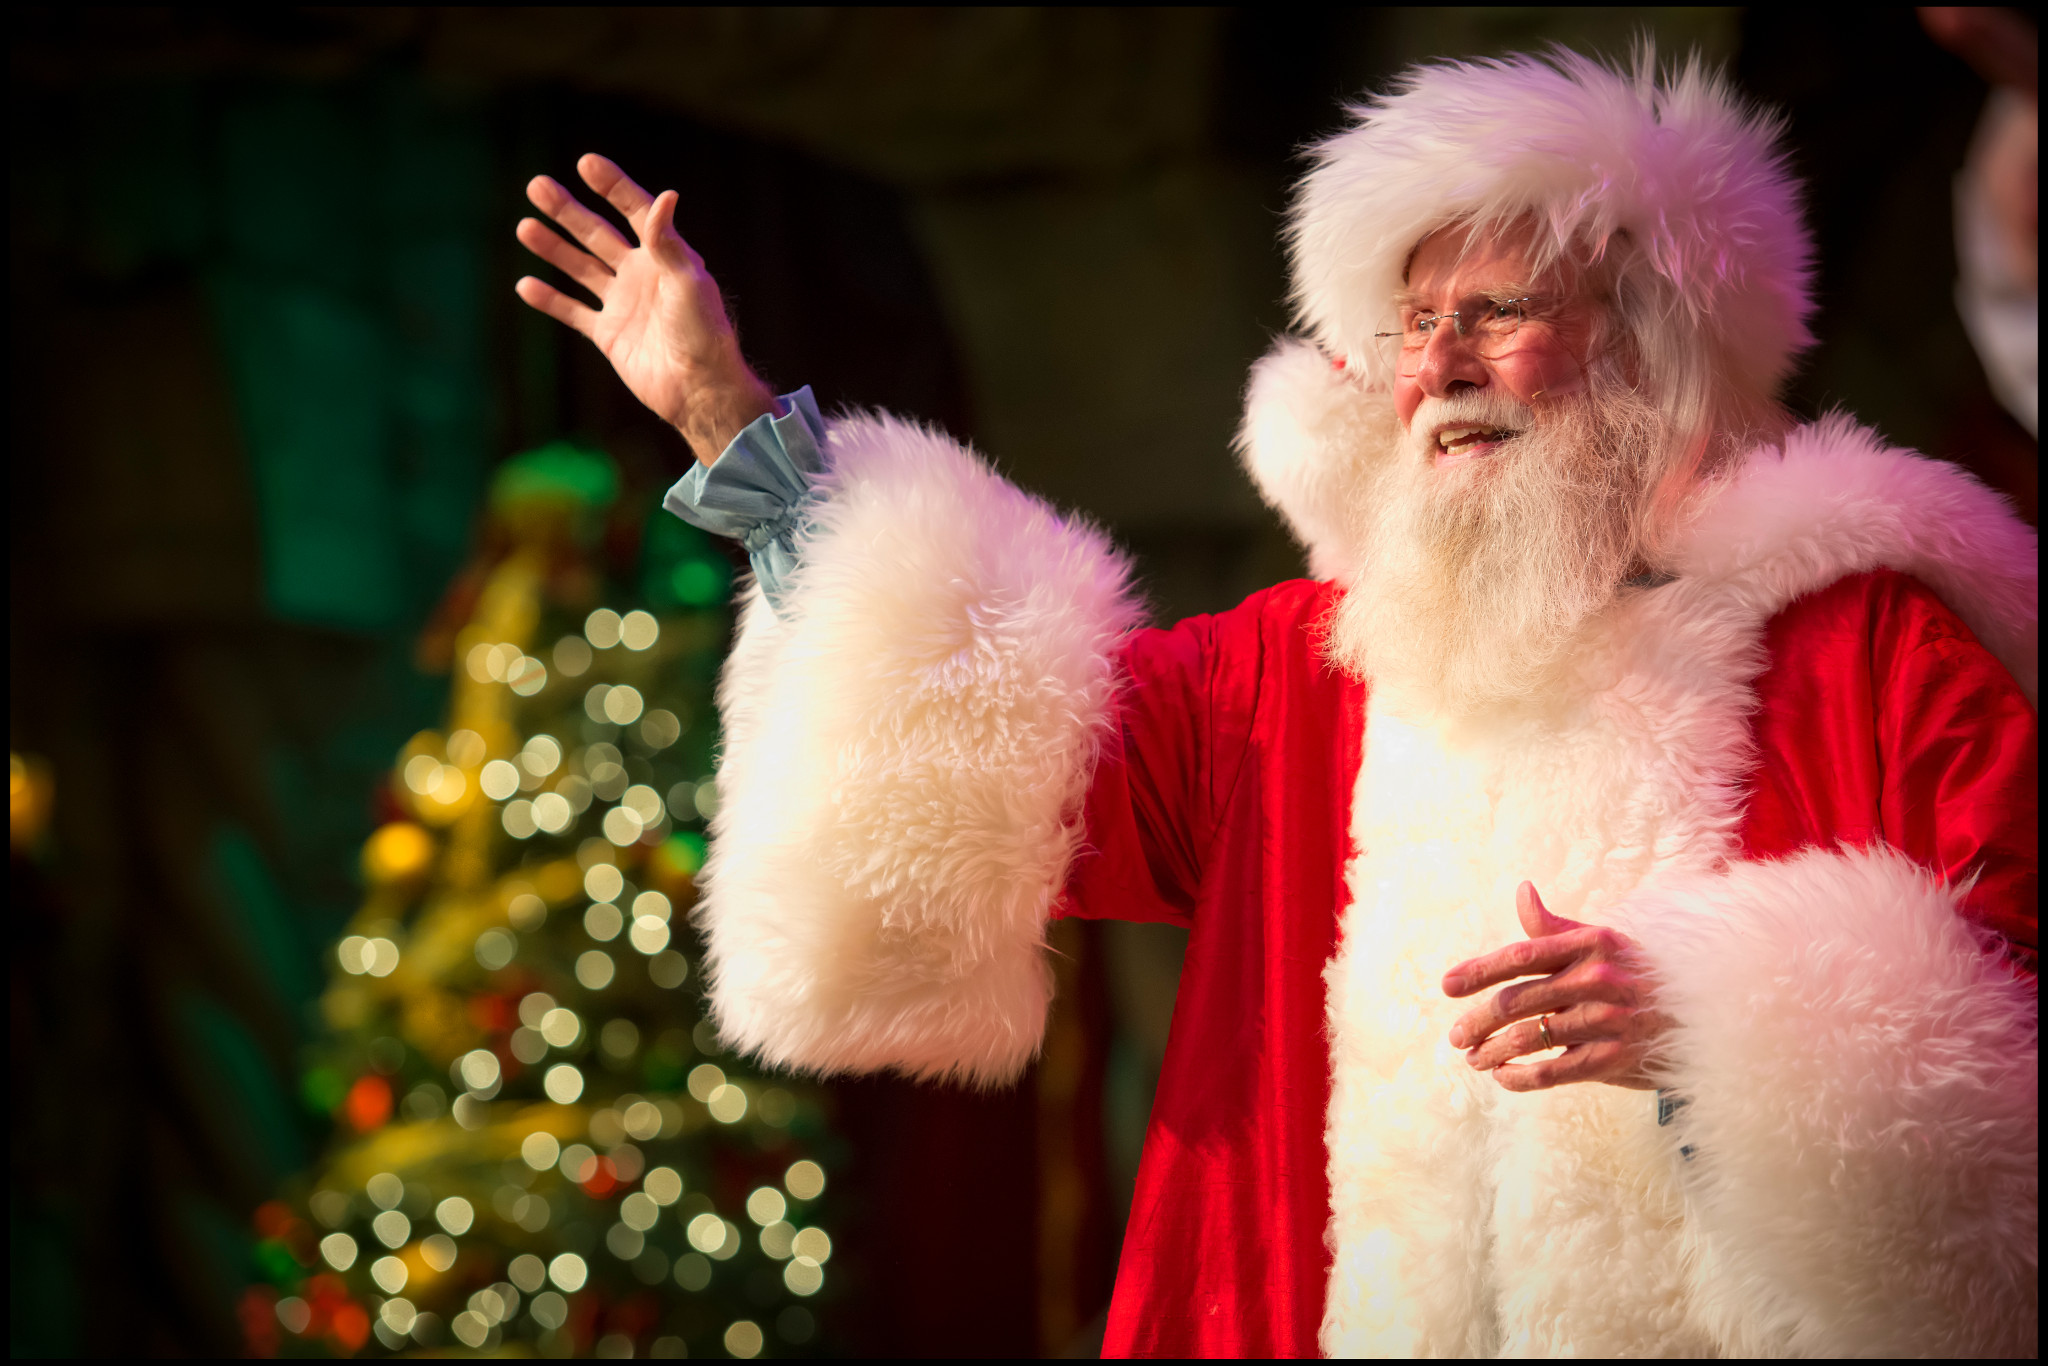 busch gardens announces 14 twinkle ticket for christmas town attraction chasers